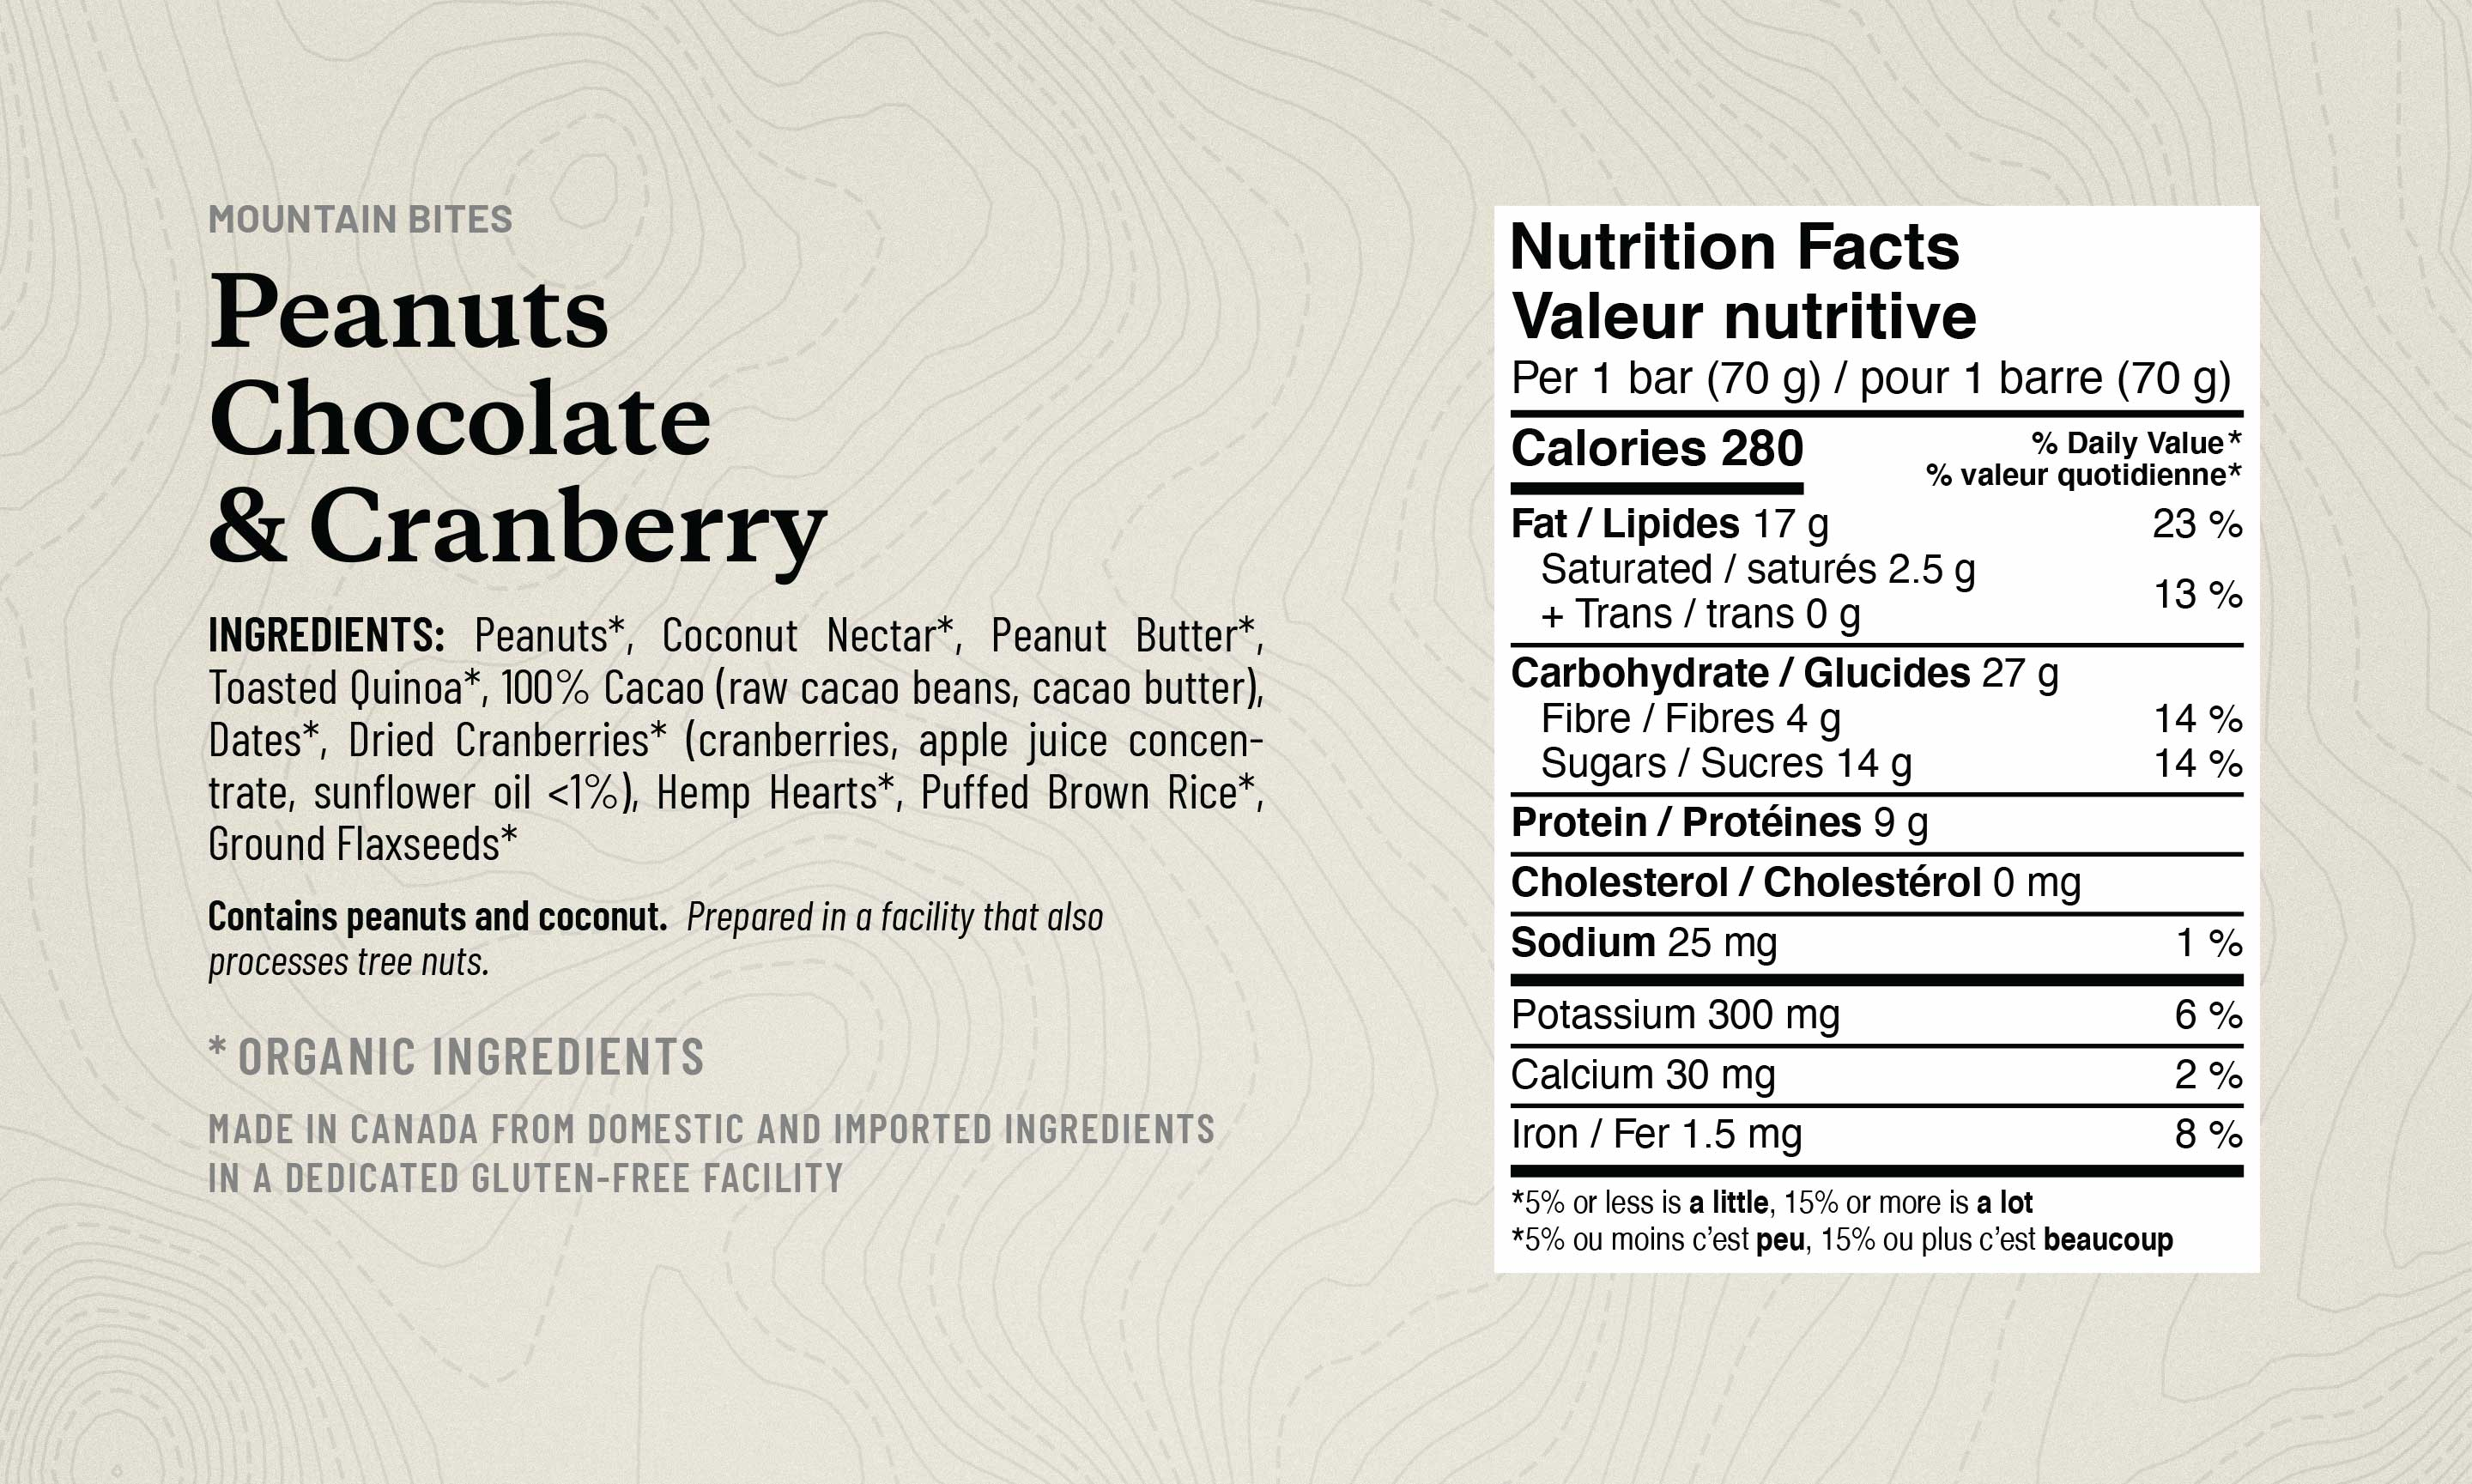 Peanut Chocolate and Cranberry Mountain Bite list of ingredients, along with the Nutrition Fact Table